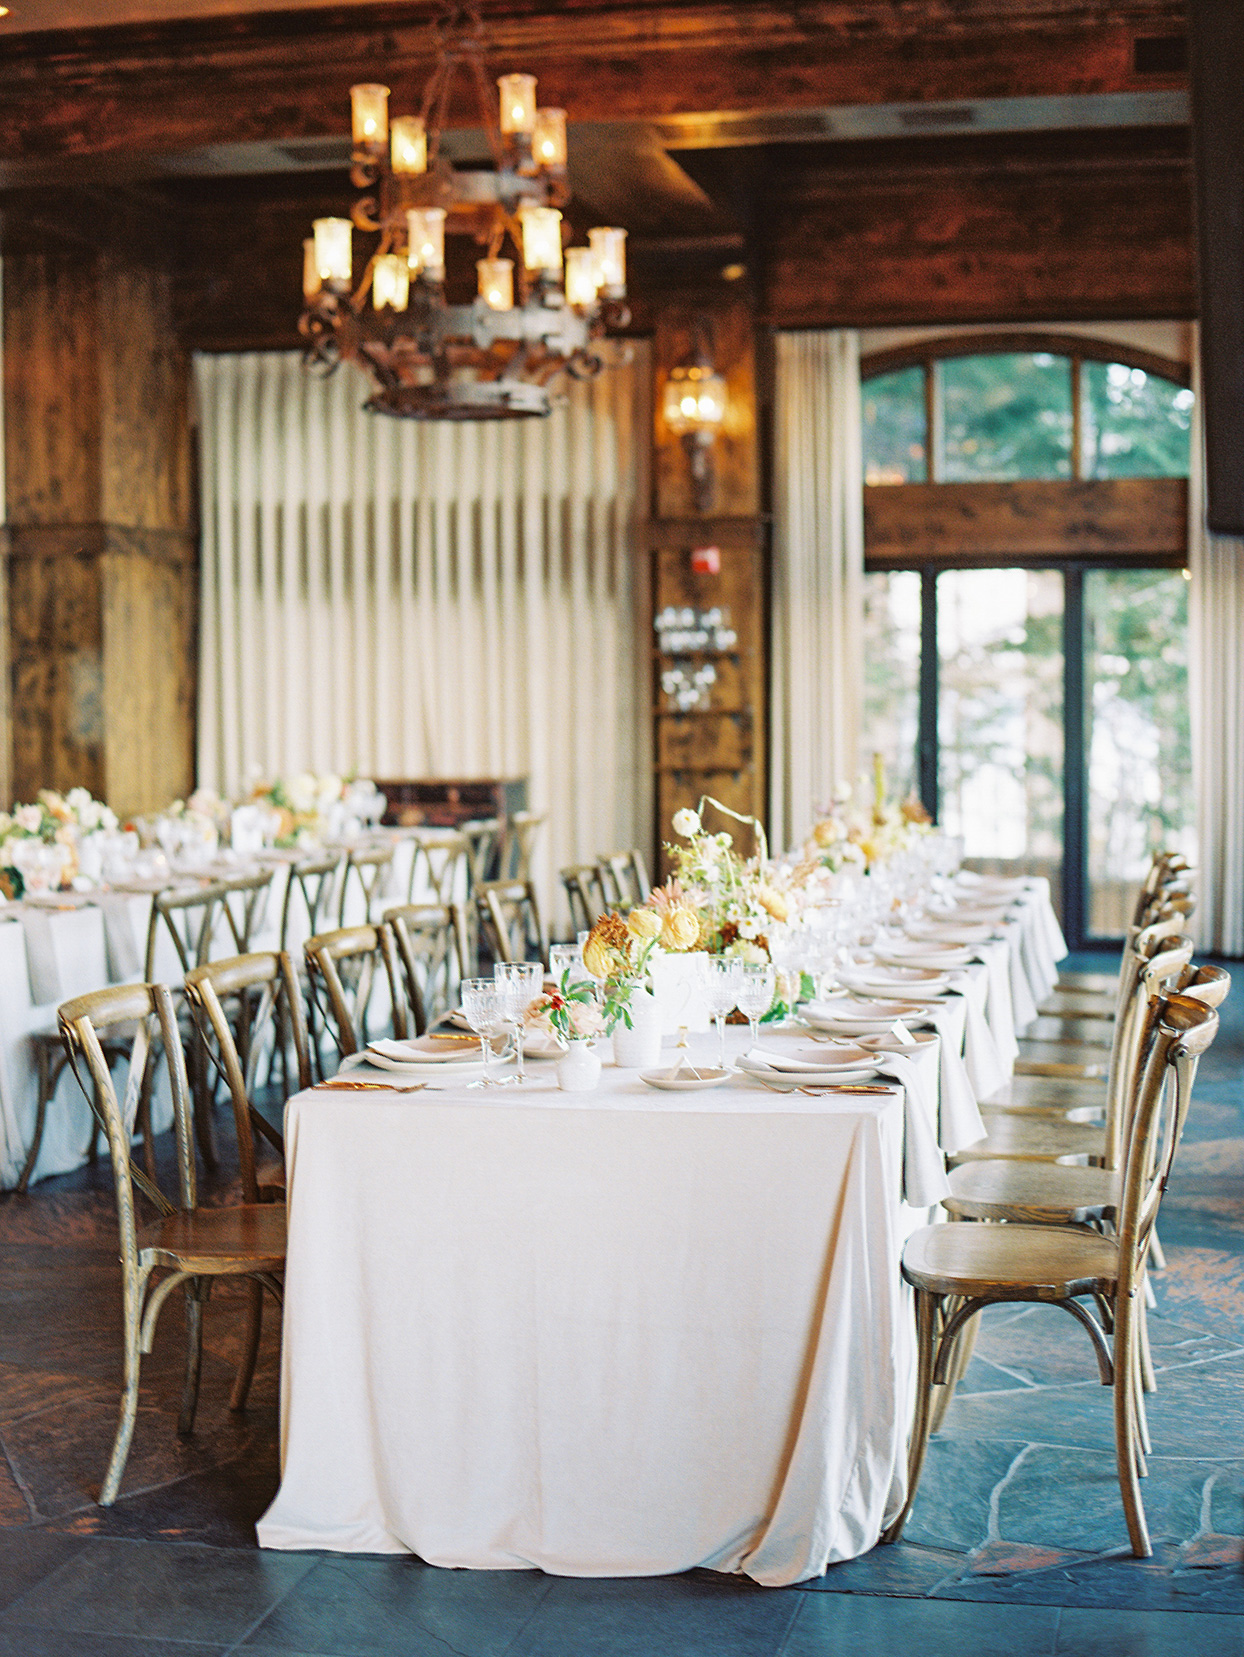 alexandra david wedding reception long table in rustic space